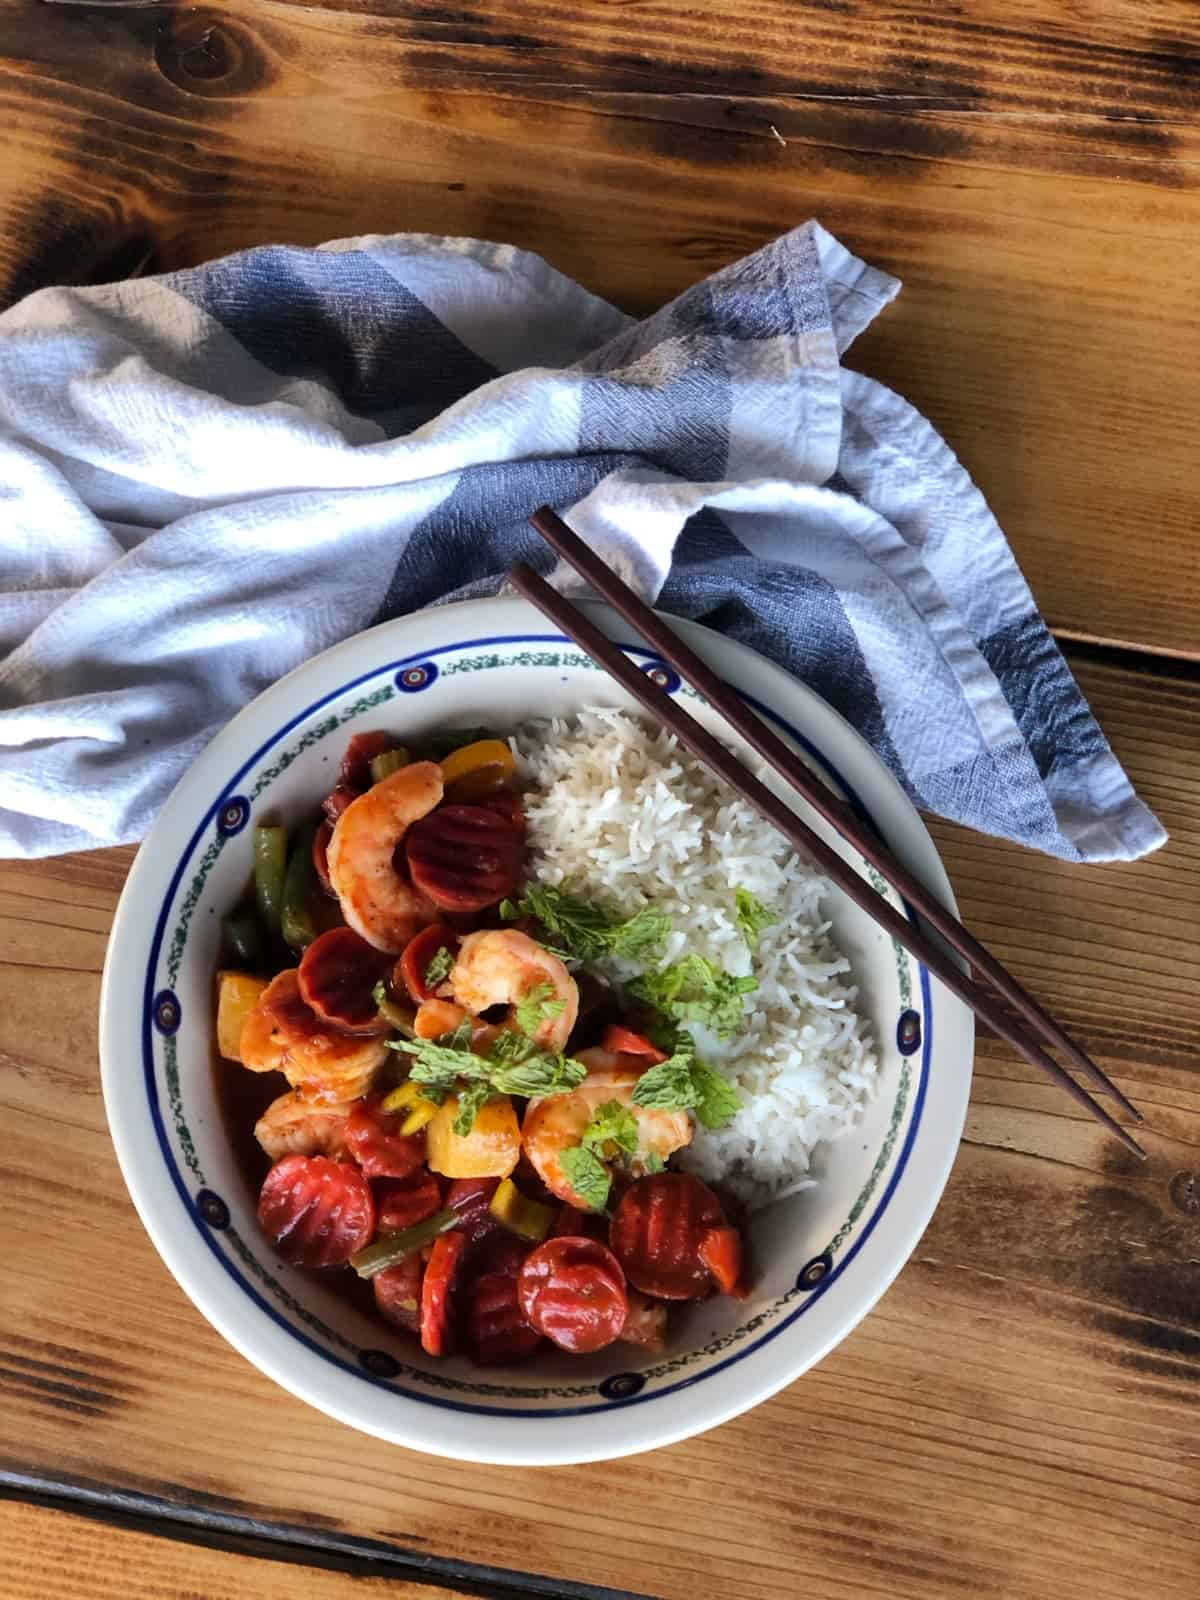 Caribbean shrimp and vegetables with white rice in bowl with chopsticks and blue napkin on wooden table.